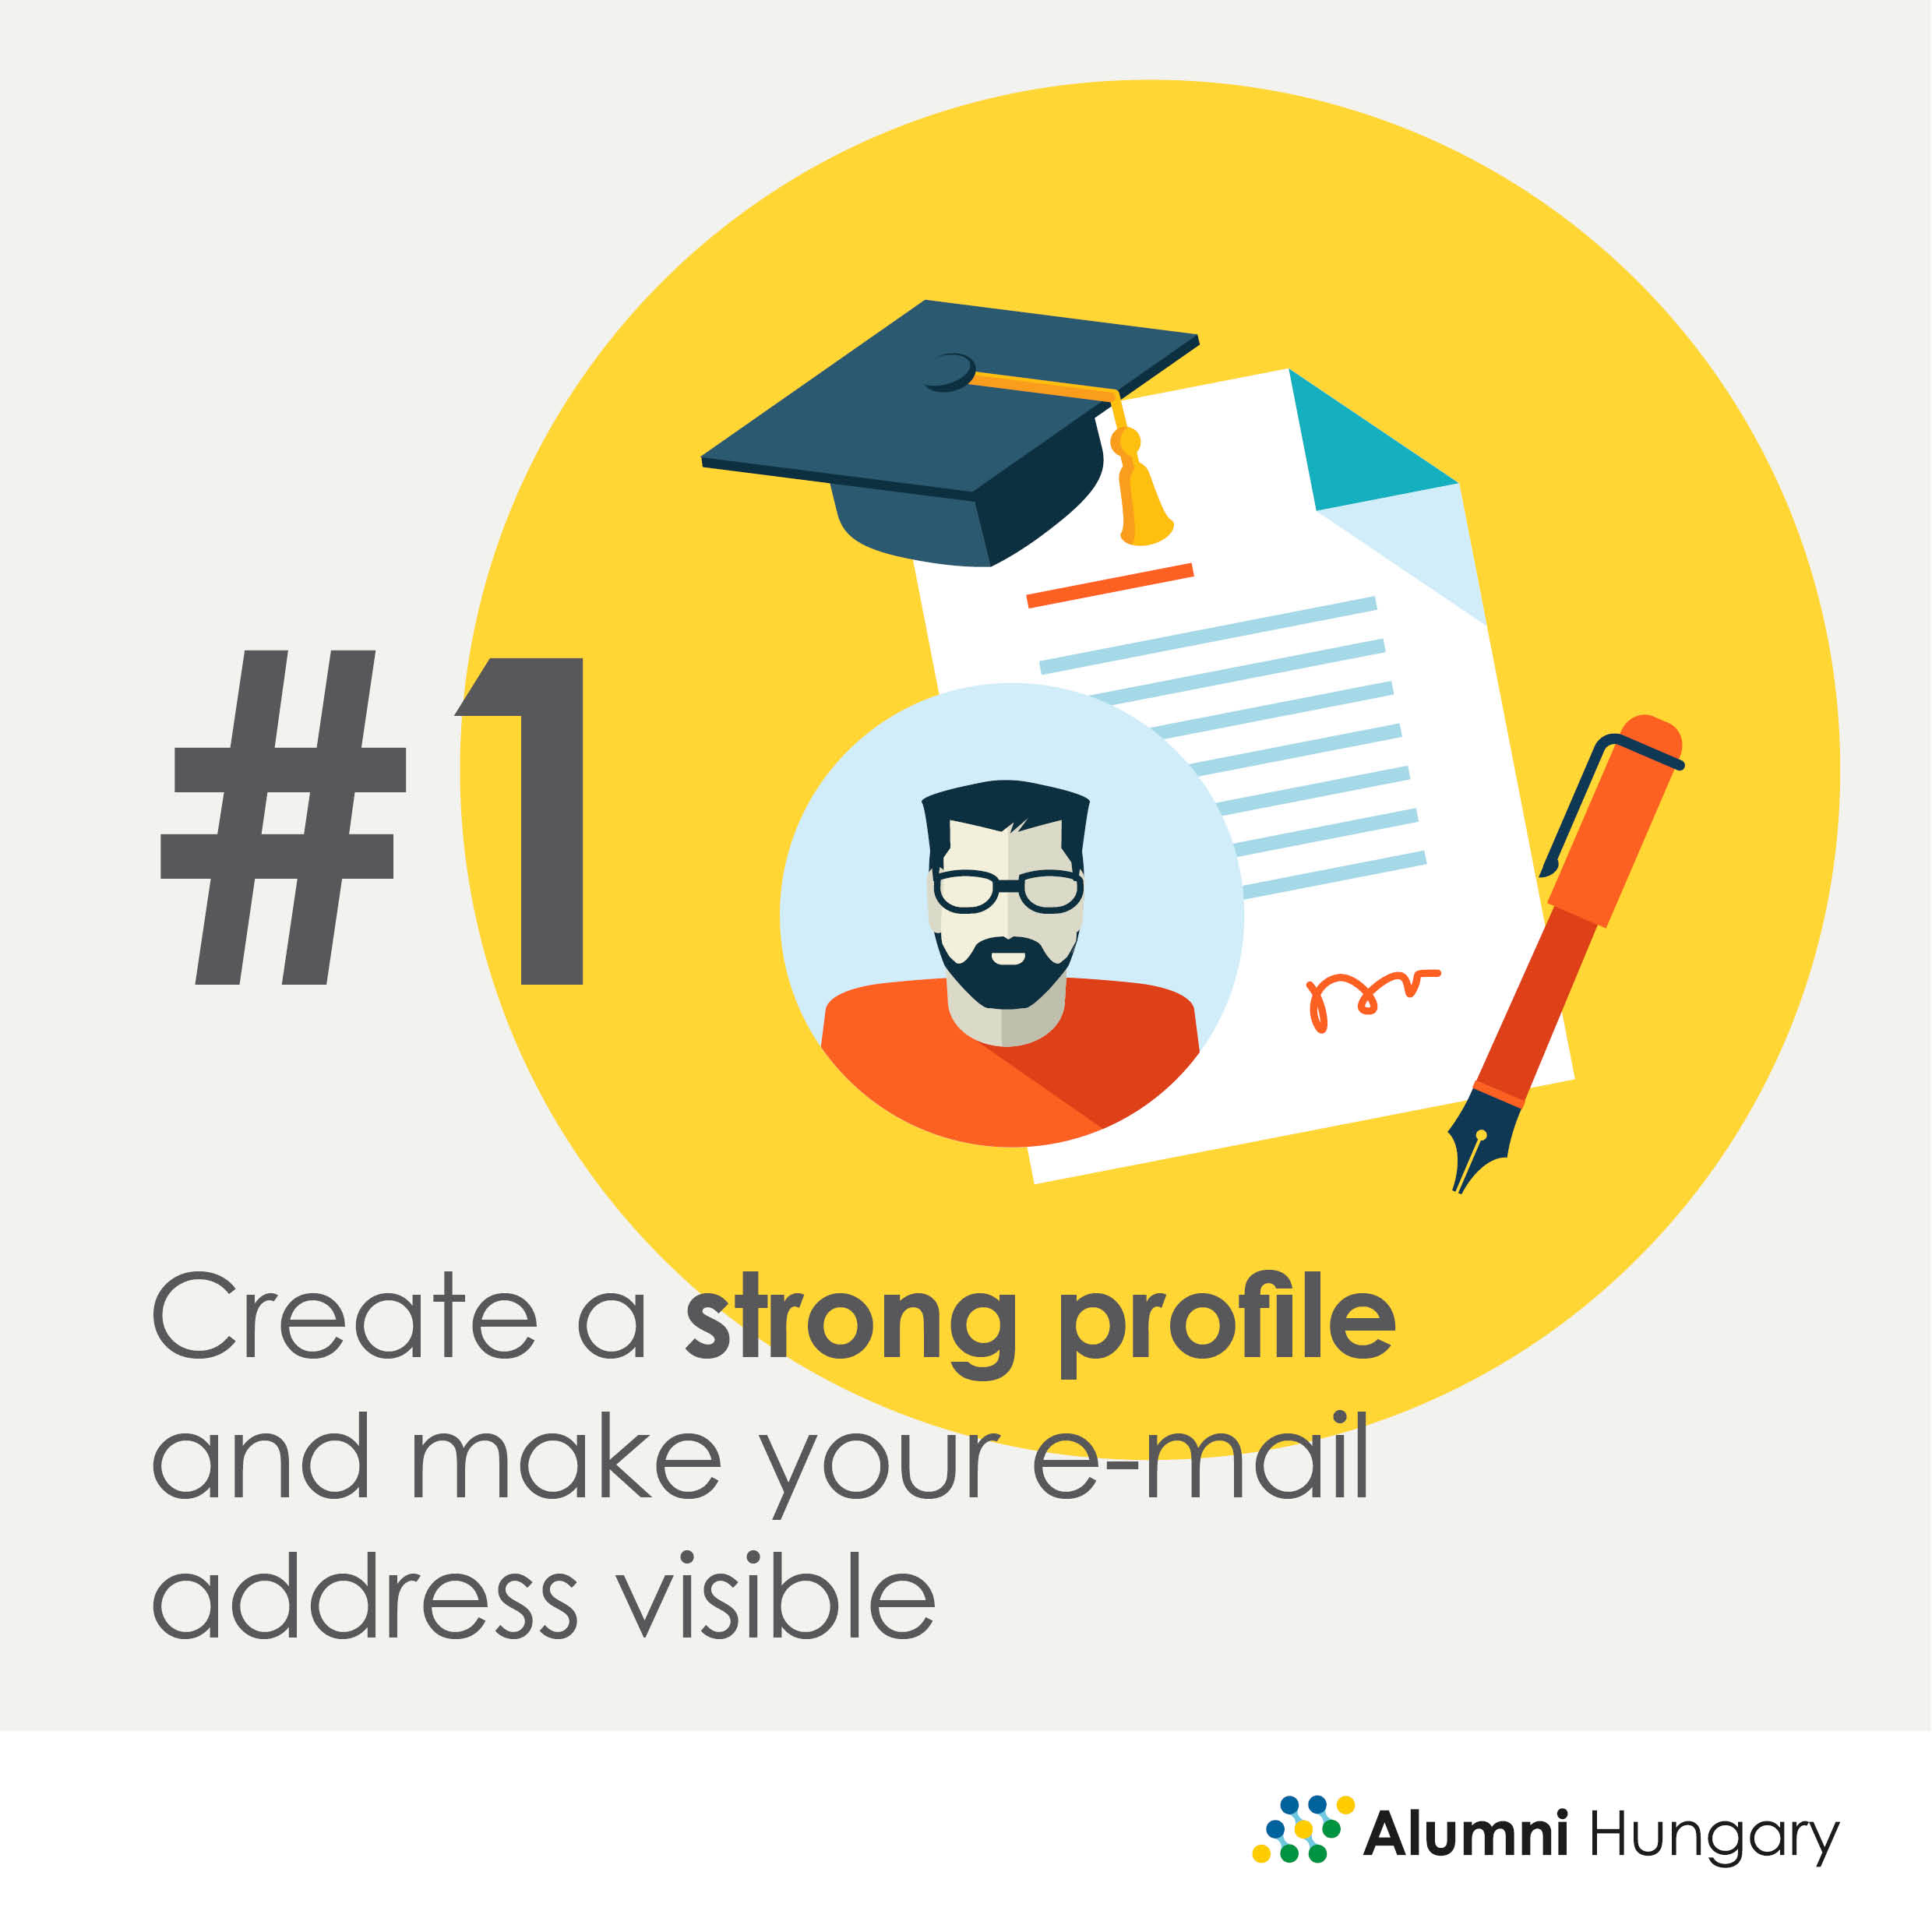 Create a strong profile and make your e-mail address visible